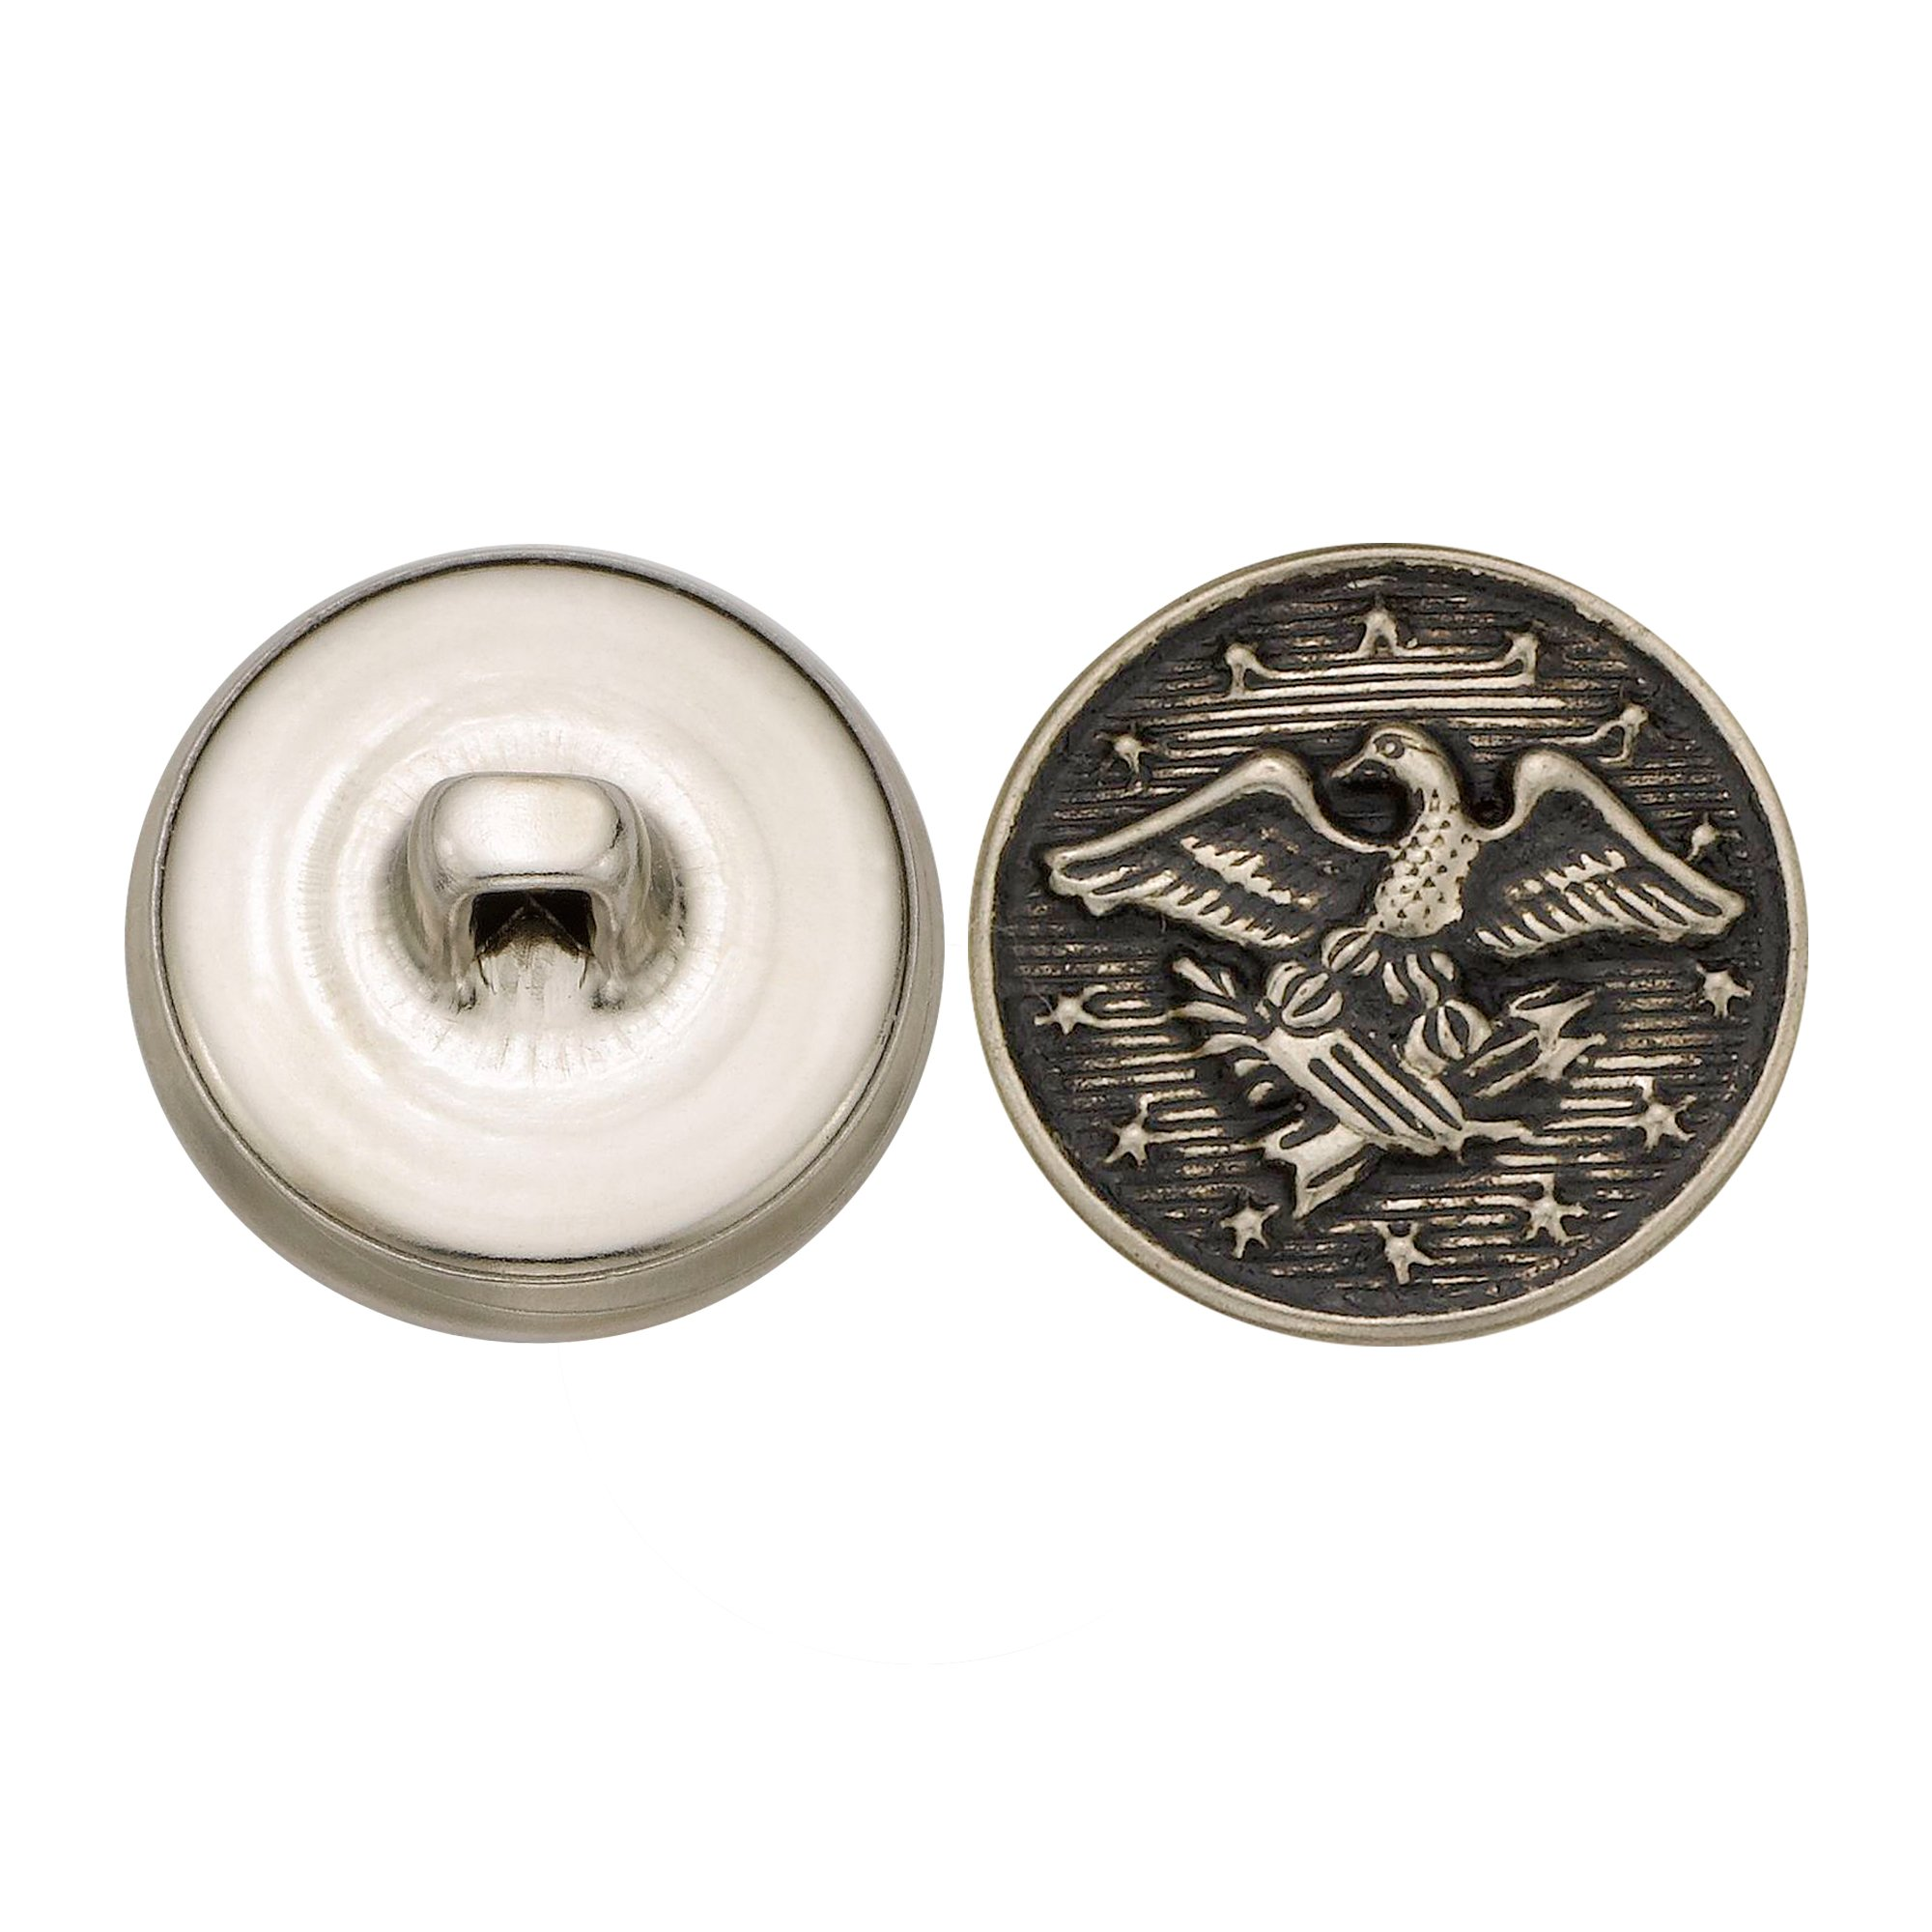 C&C Metal Products 5190 Colonial Eagle Metal Button, Size 30 Ligne, Antique Nickel, 36-Pack